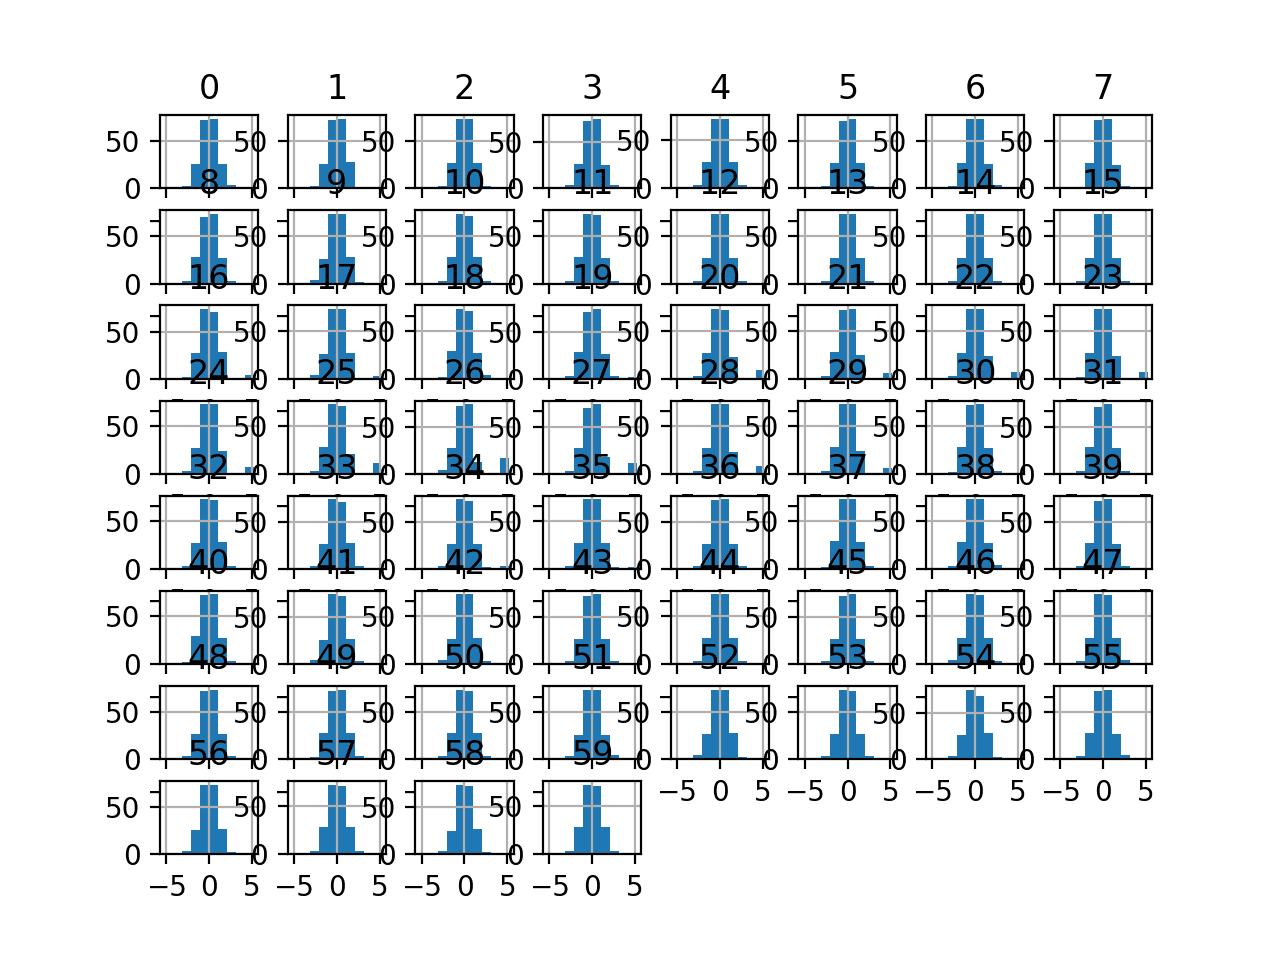 Histogram Plots of Normal Quantile Transformed Input Variables for the Sonar Dataset